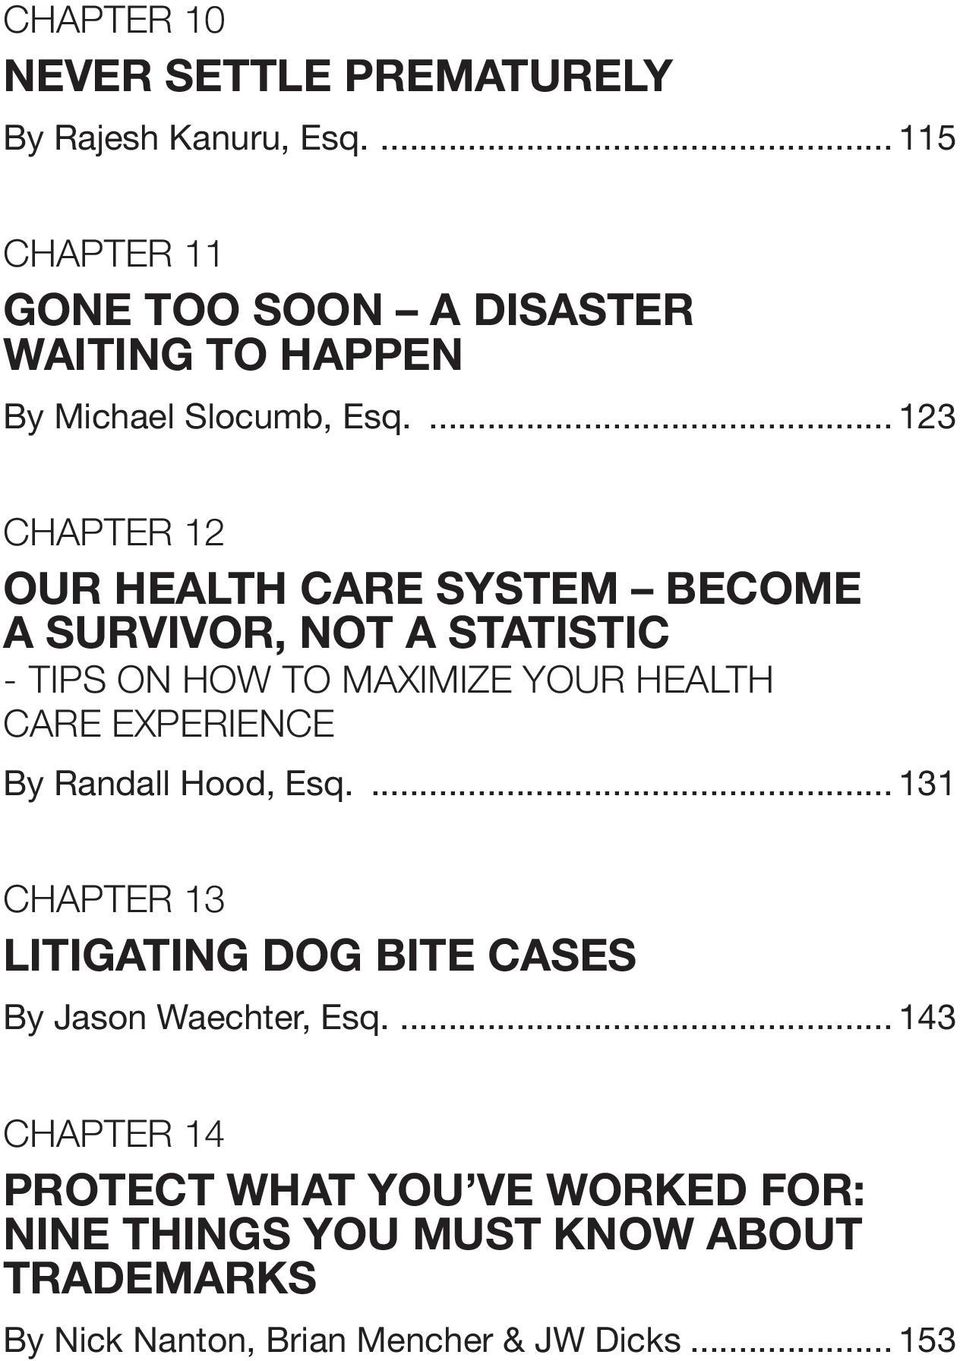 ... 123 Chapter 12 OUR HEALTH CARE SYSTEM BECOME A SURVIVOR, NOT A STATISTIC - Tips on How to Maximize your Health Care